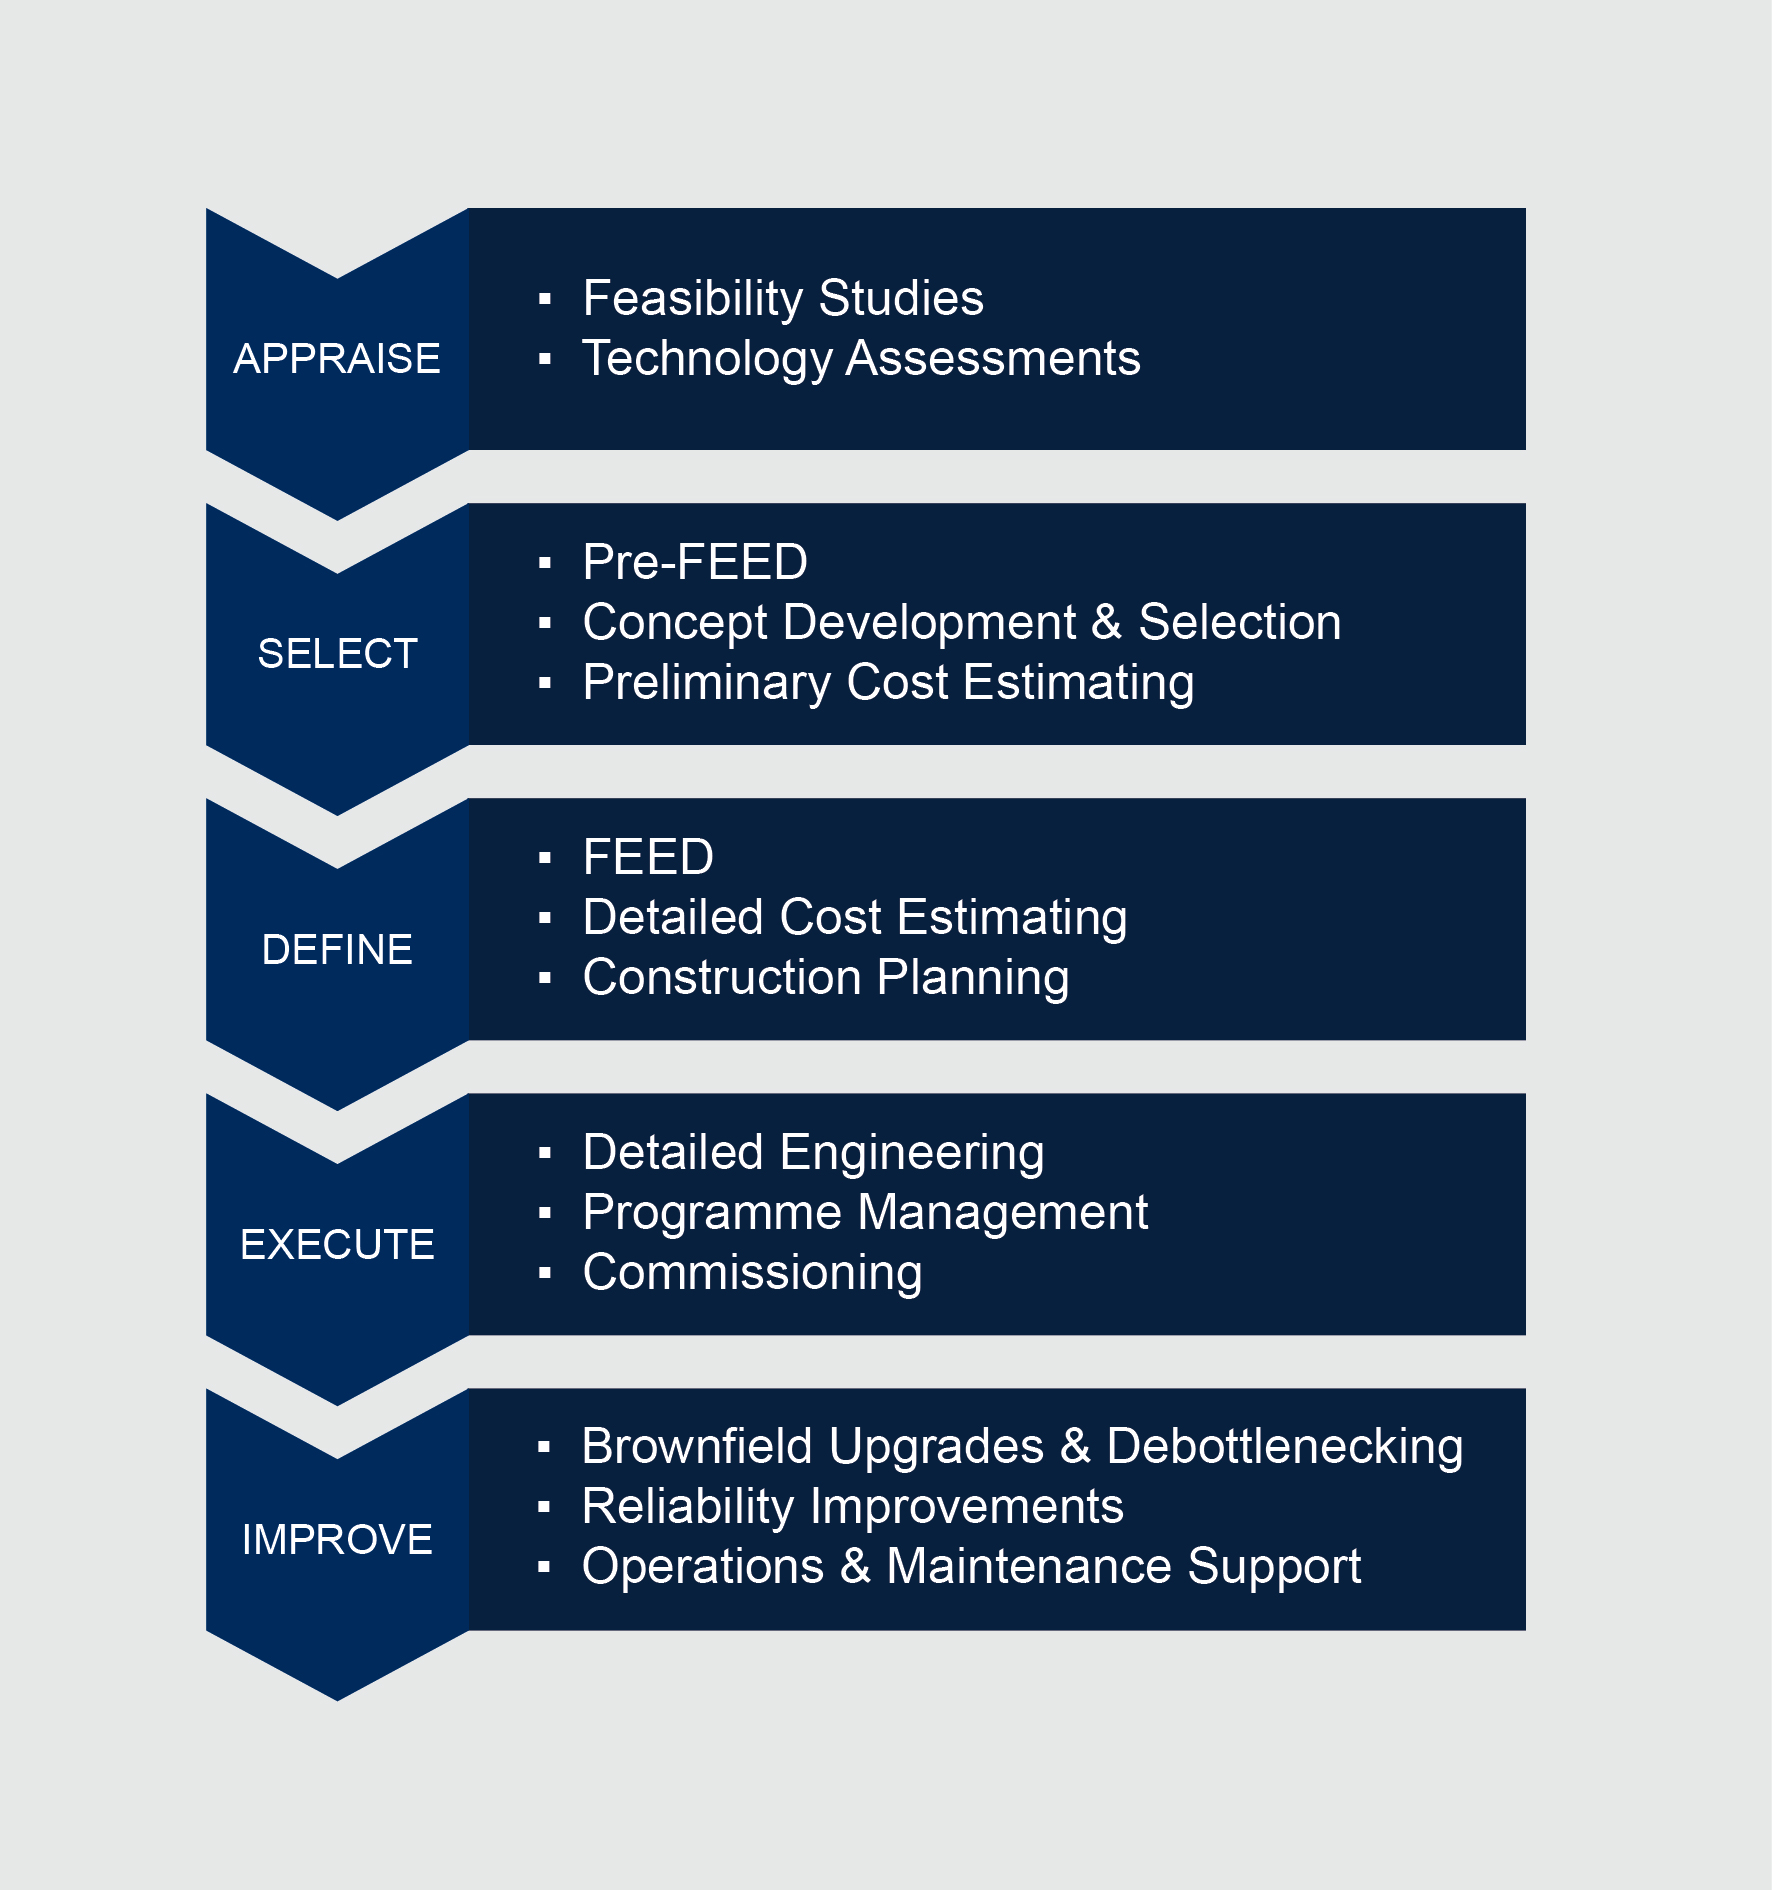 Appraise Select Define Execute Improve Project Lifecycle